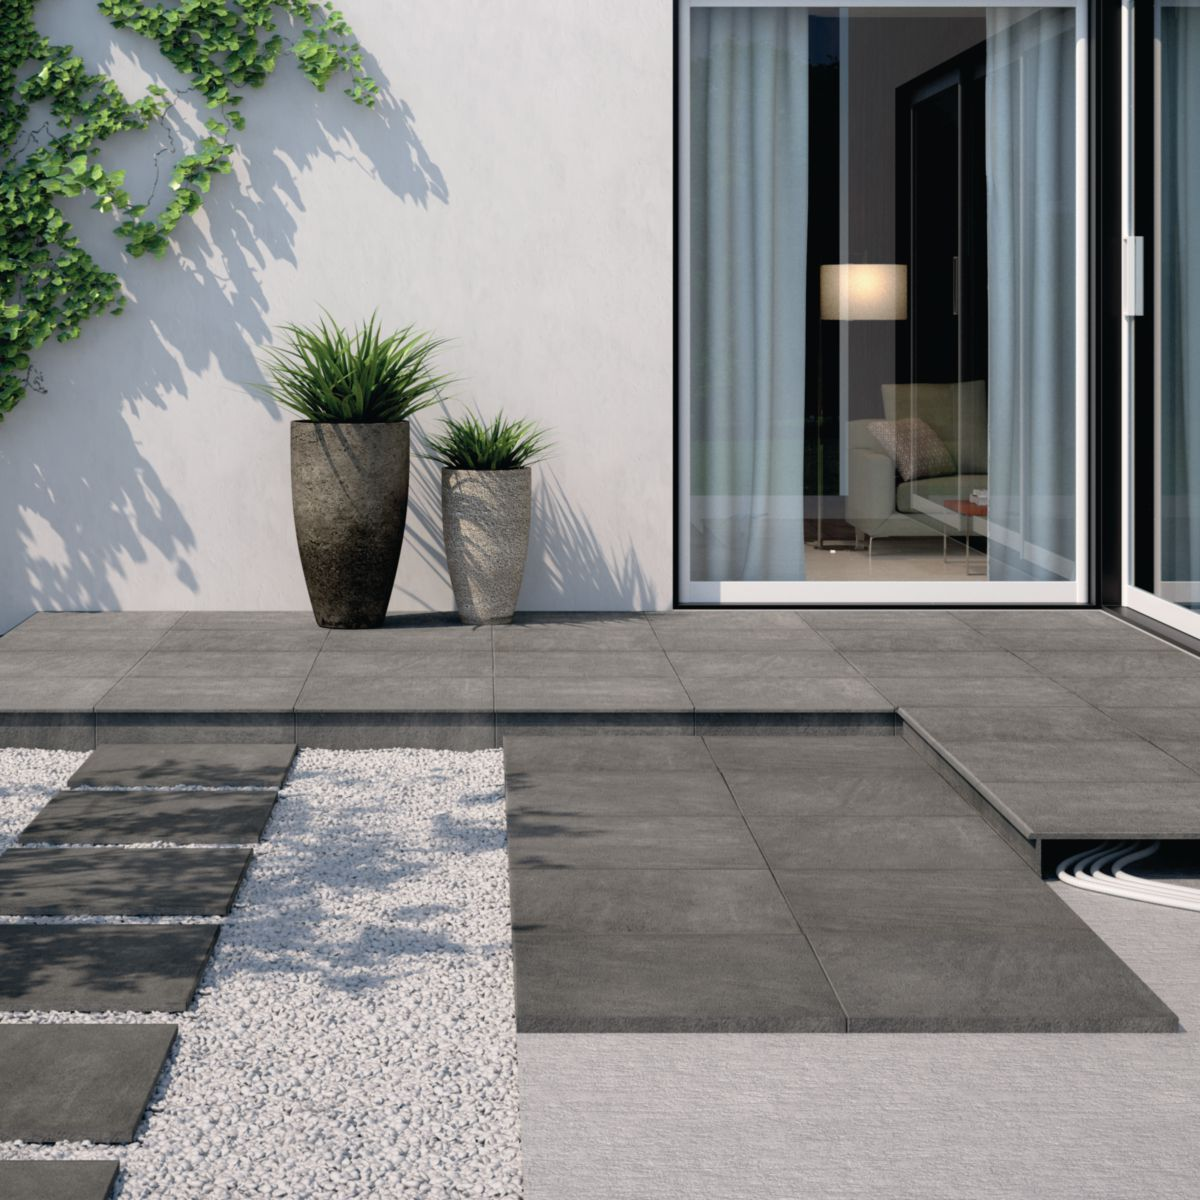 Carrelage Terrasse Exterieur Point P Carrelage Exterieur Antiderapant Point P Rk51 Jornalagora